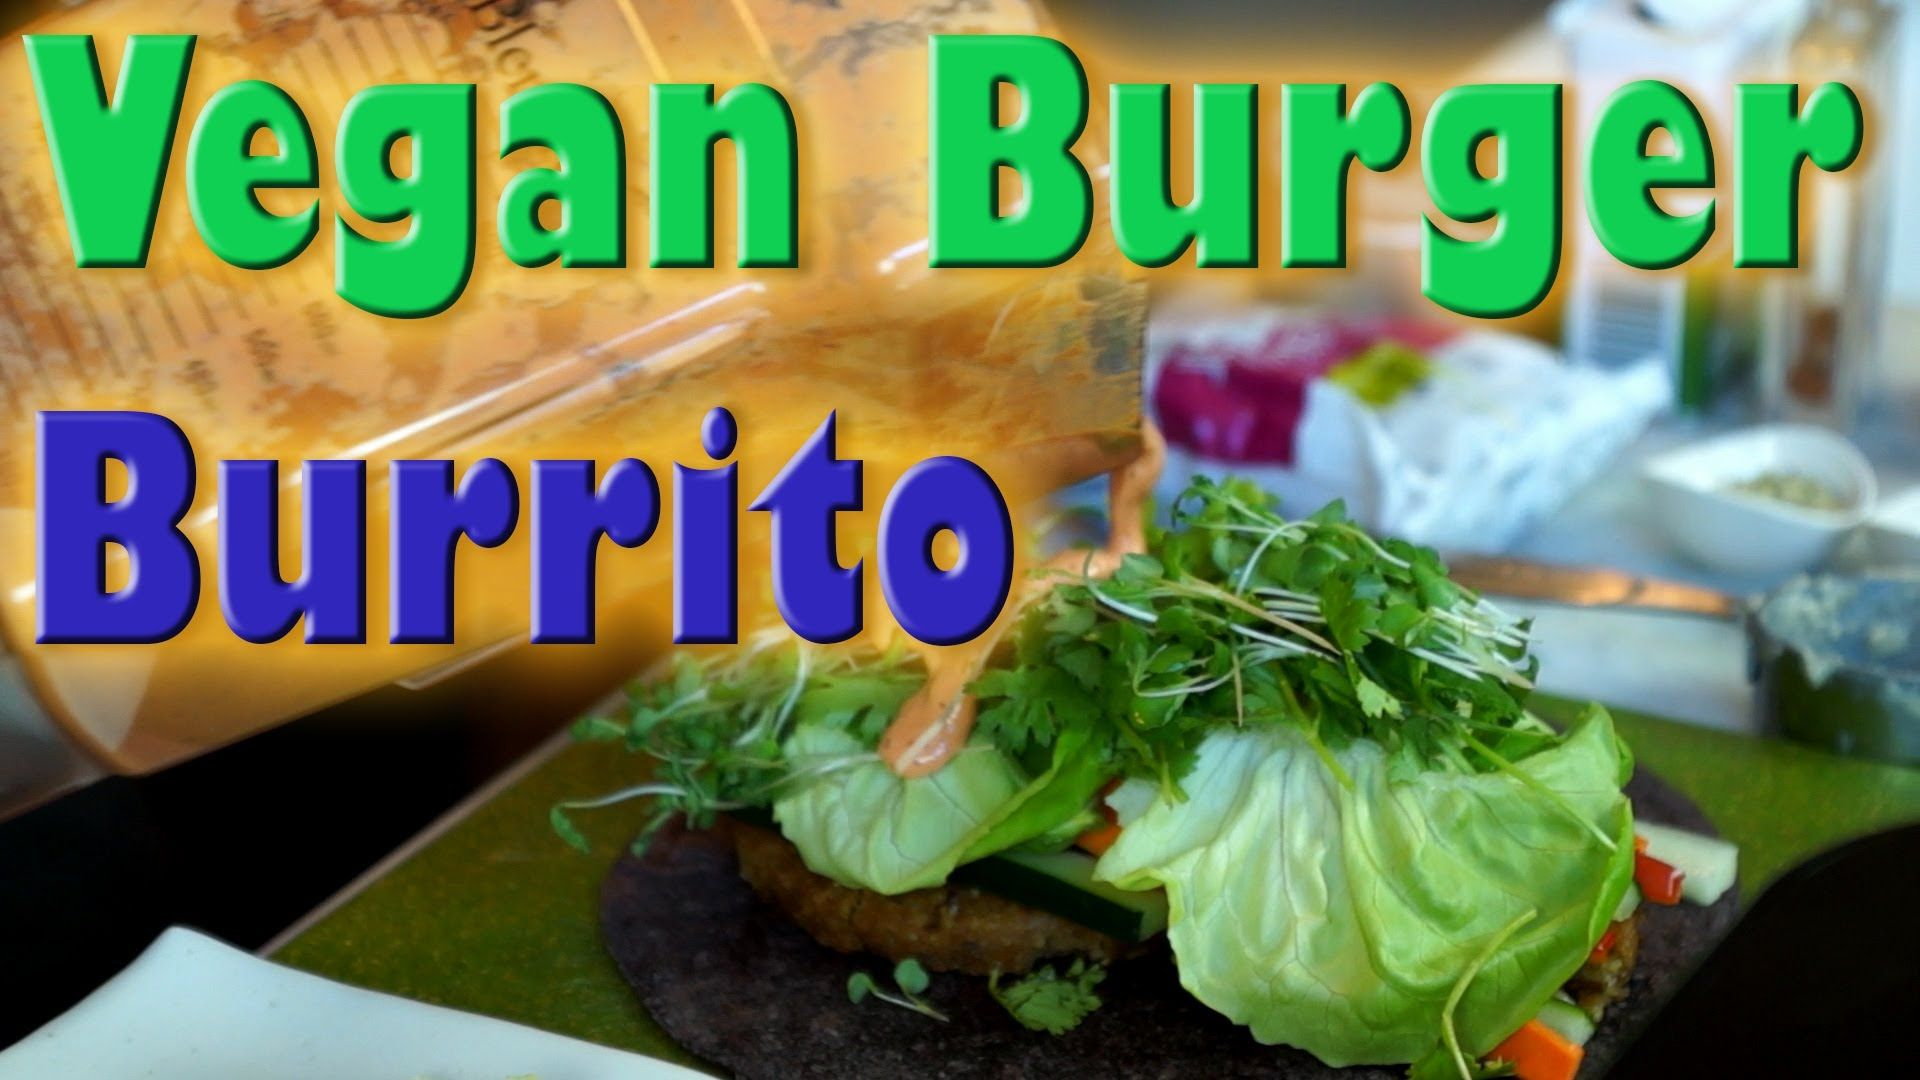 Love this yummy looking burgerrito recipe vegan recipe monster love this yummy looking burgerrito recipe vegan recipe monster burger burrito forumfinder Images